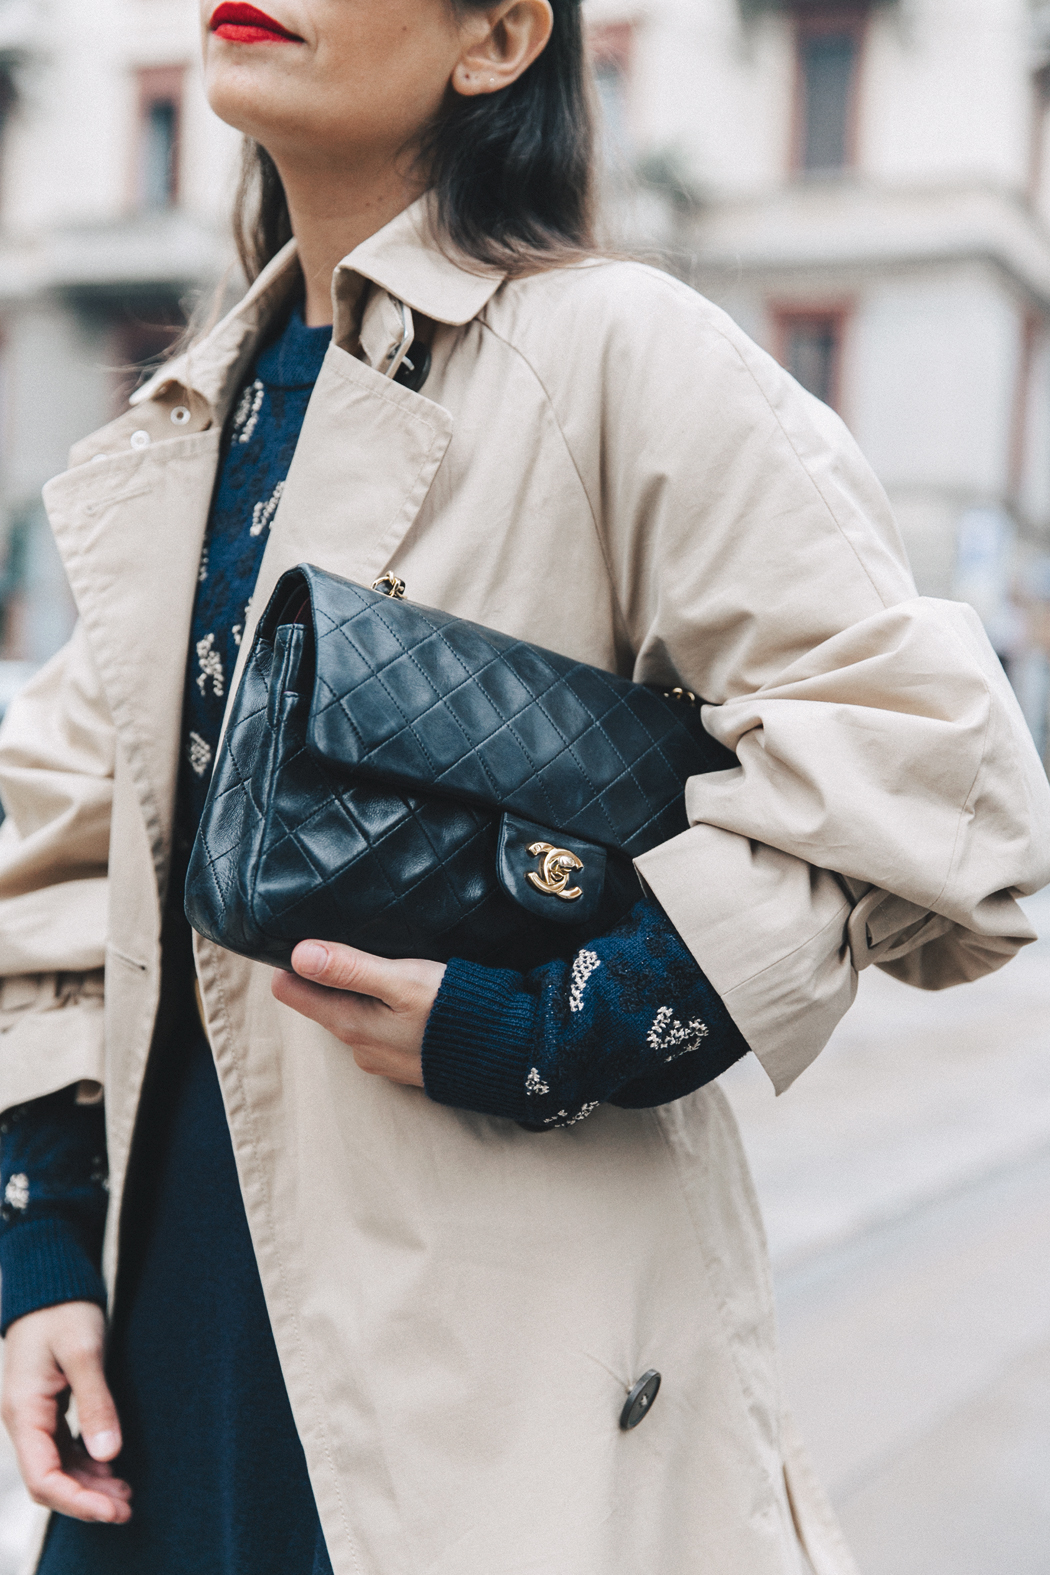 Trench_Edited-Leopard_Sweater-Midi_Skirt-Chanel_Slingback_Shoes-Chanel_Vintage_Bag-Ouftit_Streetstyle-14